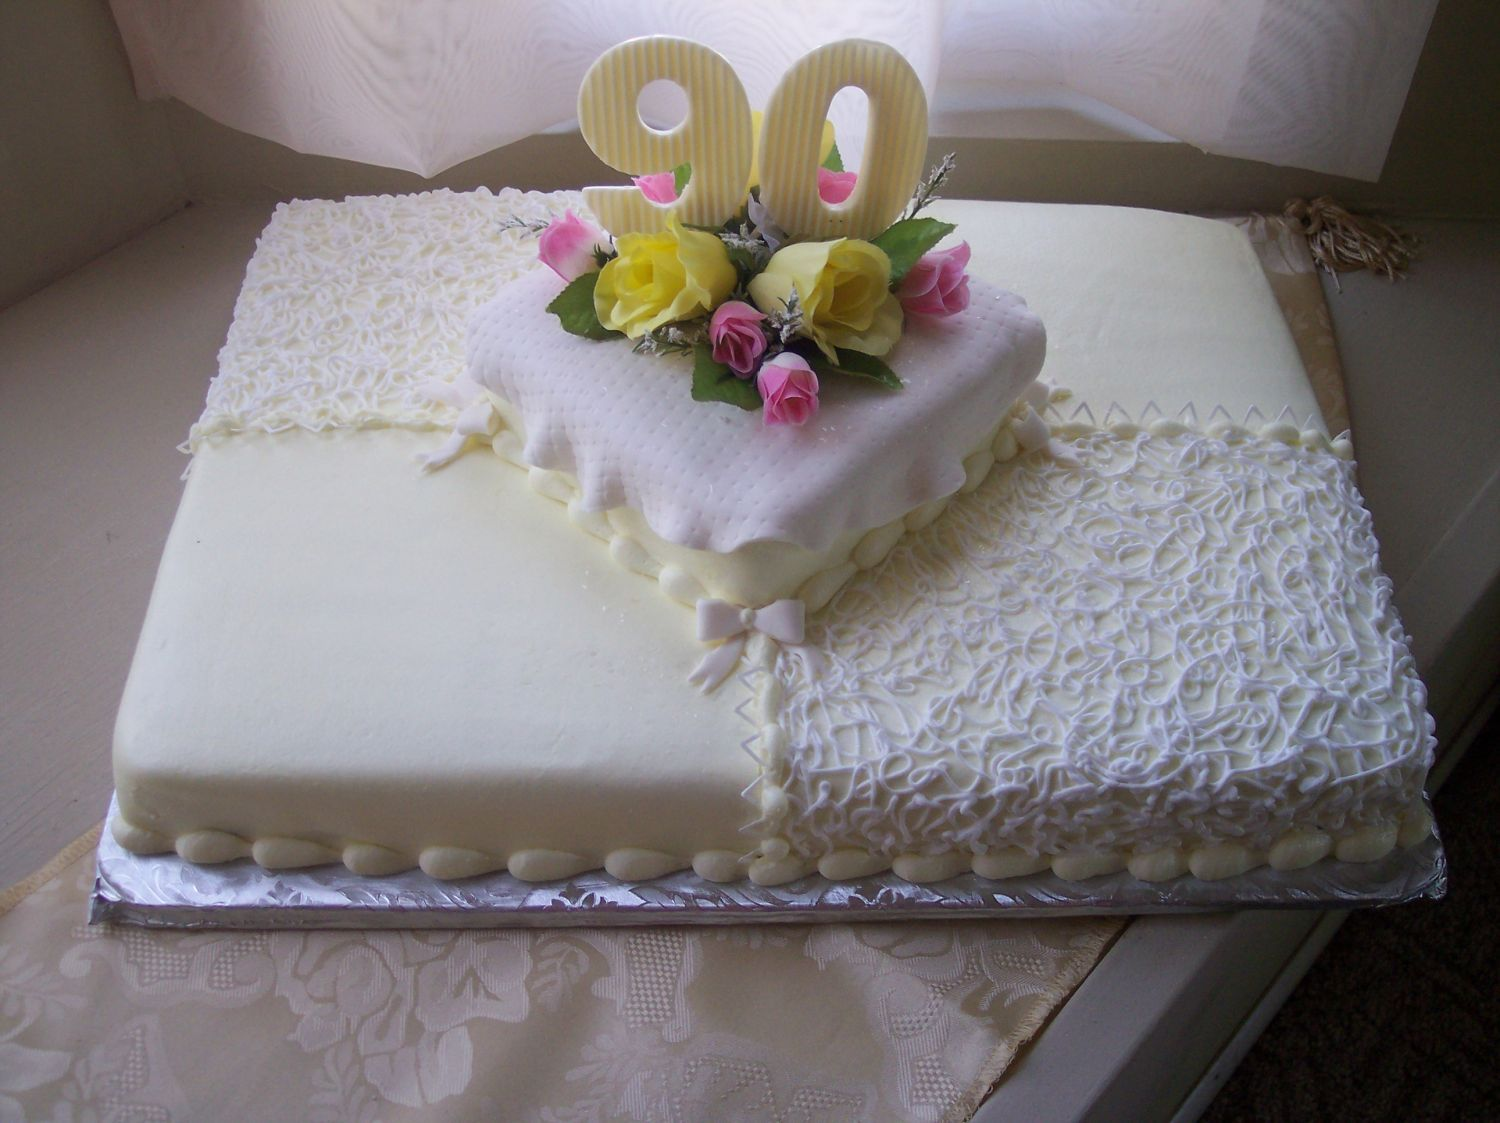 90th birthday party events ideals pinterest 90 for 90th birthday cake decoration ideas